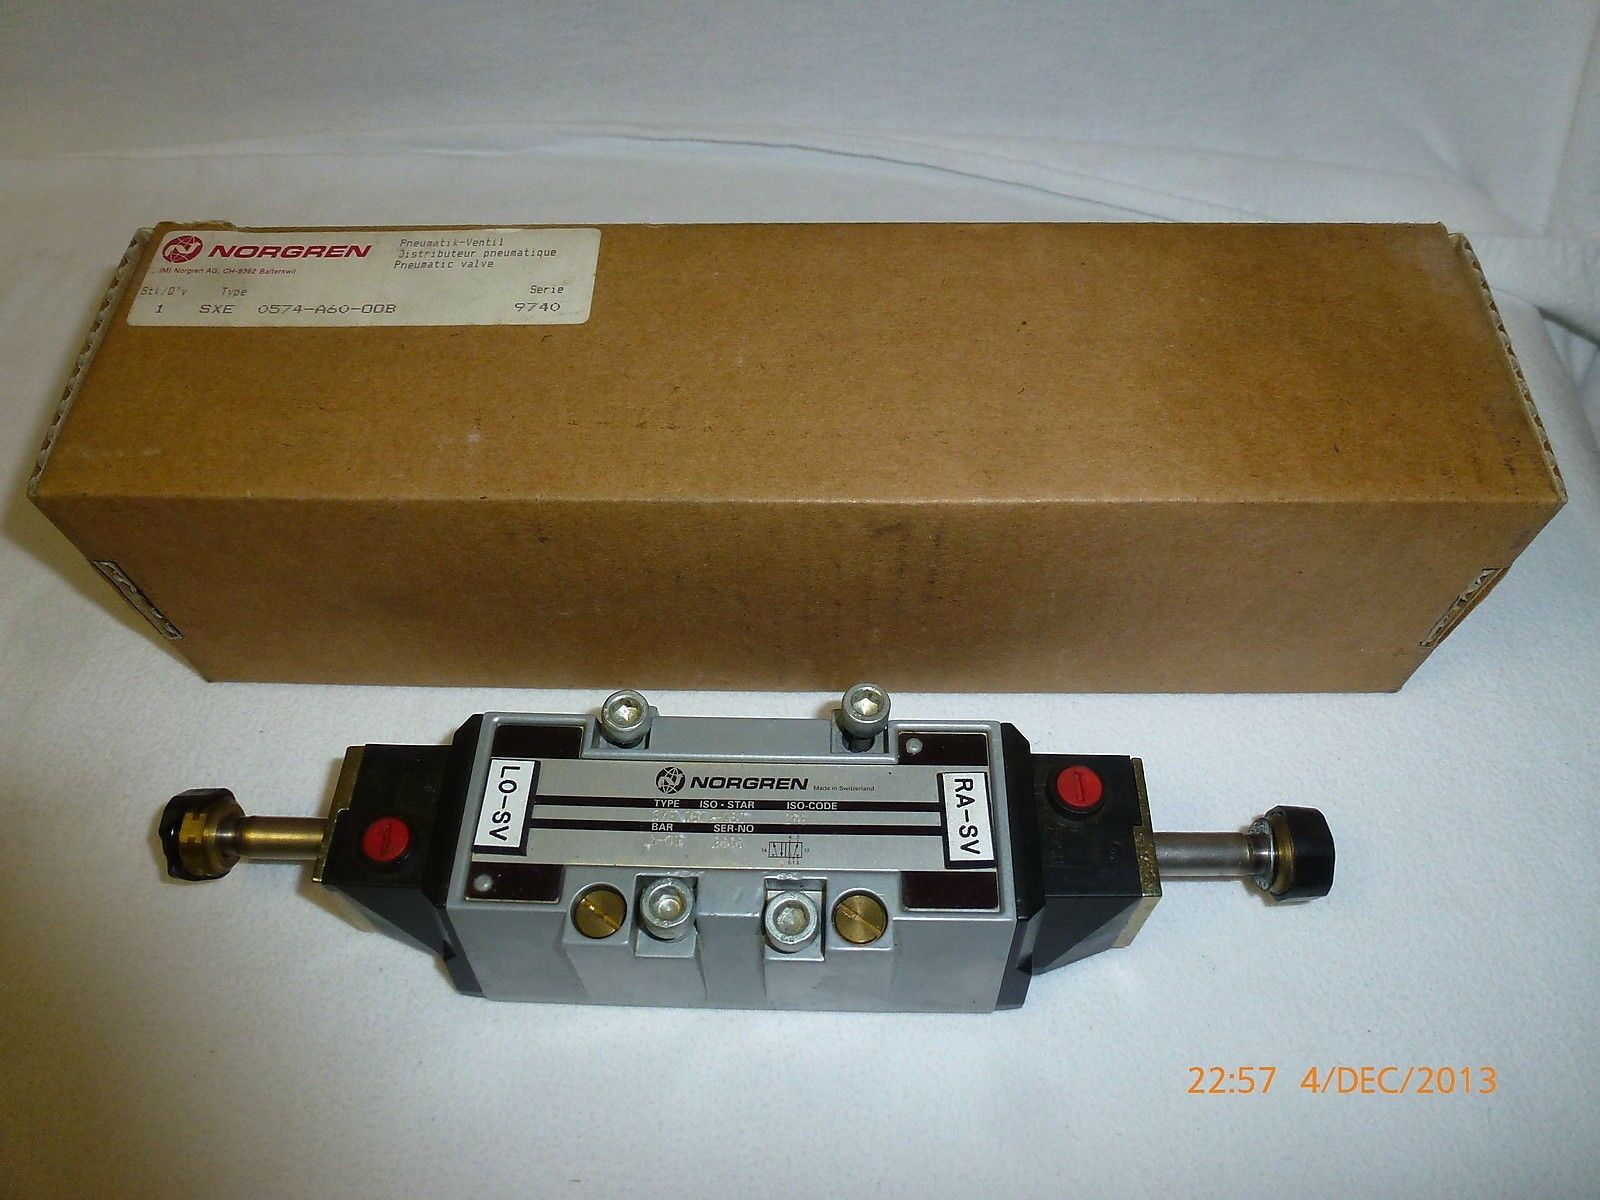 Norgren Iso Star Solenoid Valve Sxe 0574 A60 00b Series 9740 2 10bar 10pcs Reed Switches Magic Switch Induction No Nc Spdt Norton Secured Powered By Verisign